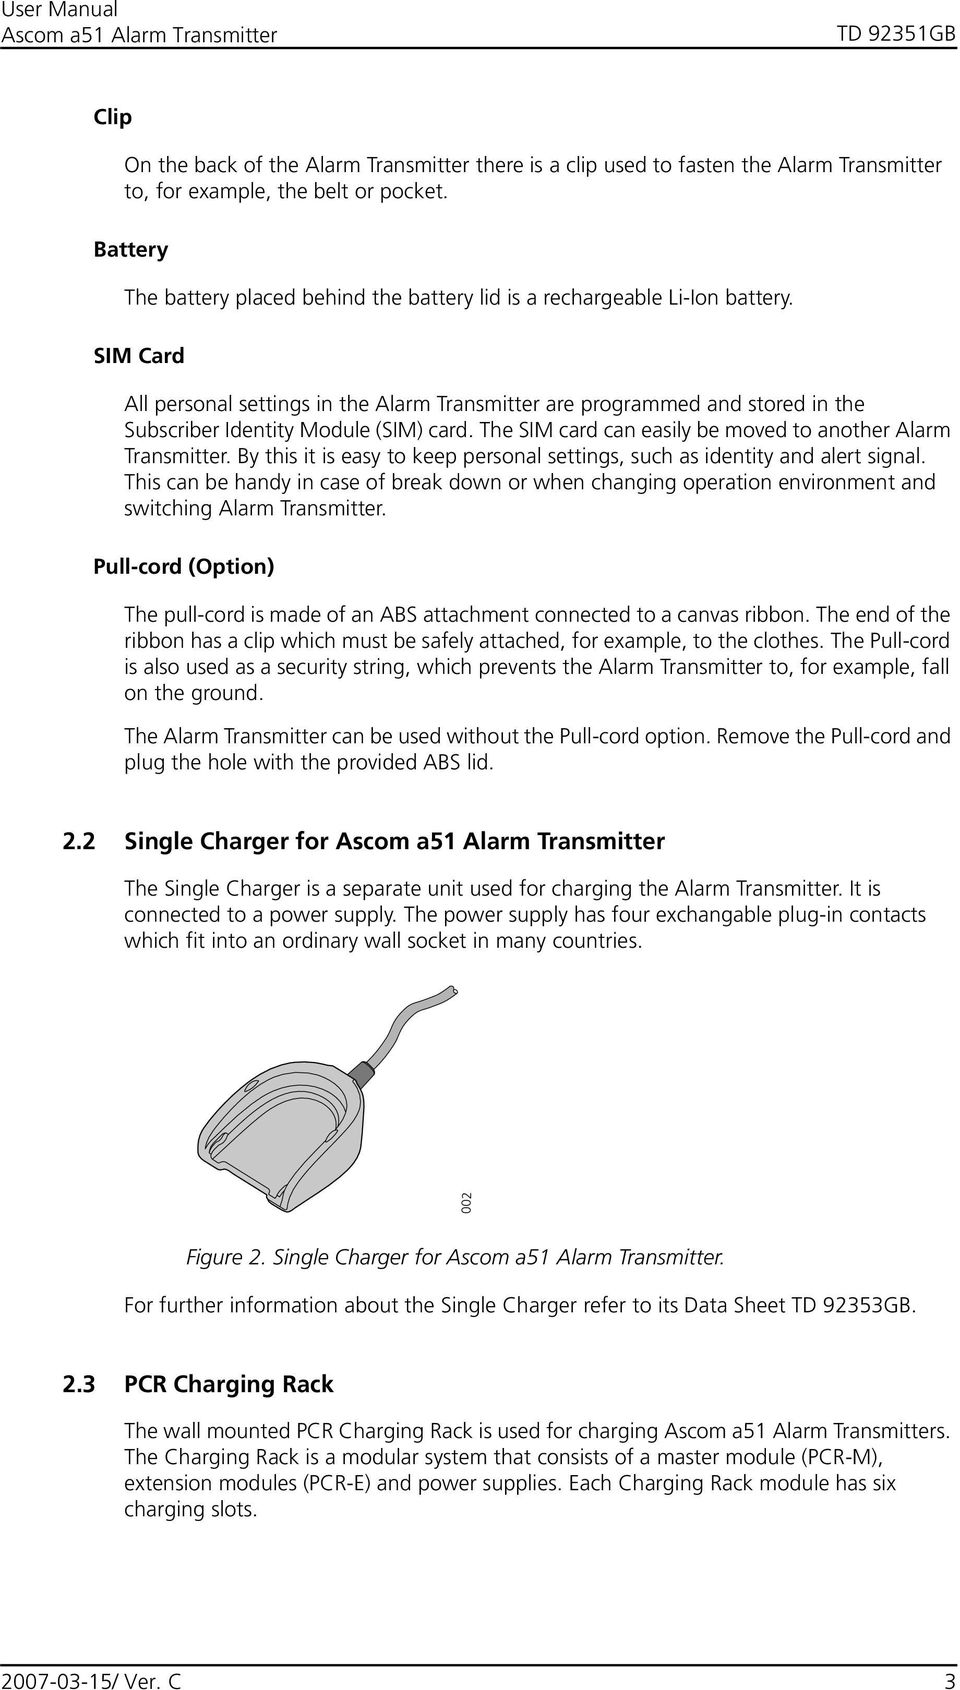 User Manual Ascom a51 Alarm Transmitter - PDF